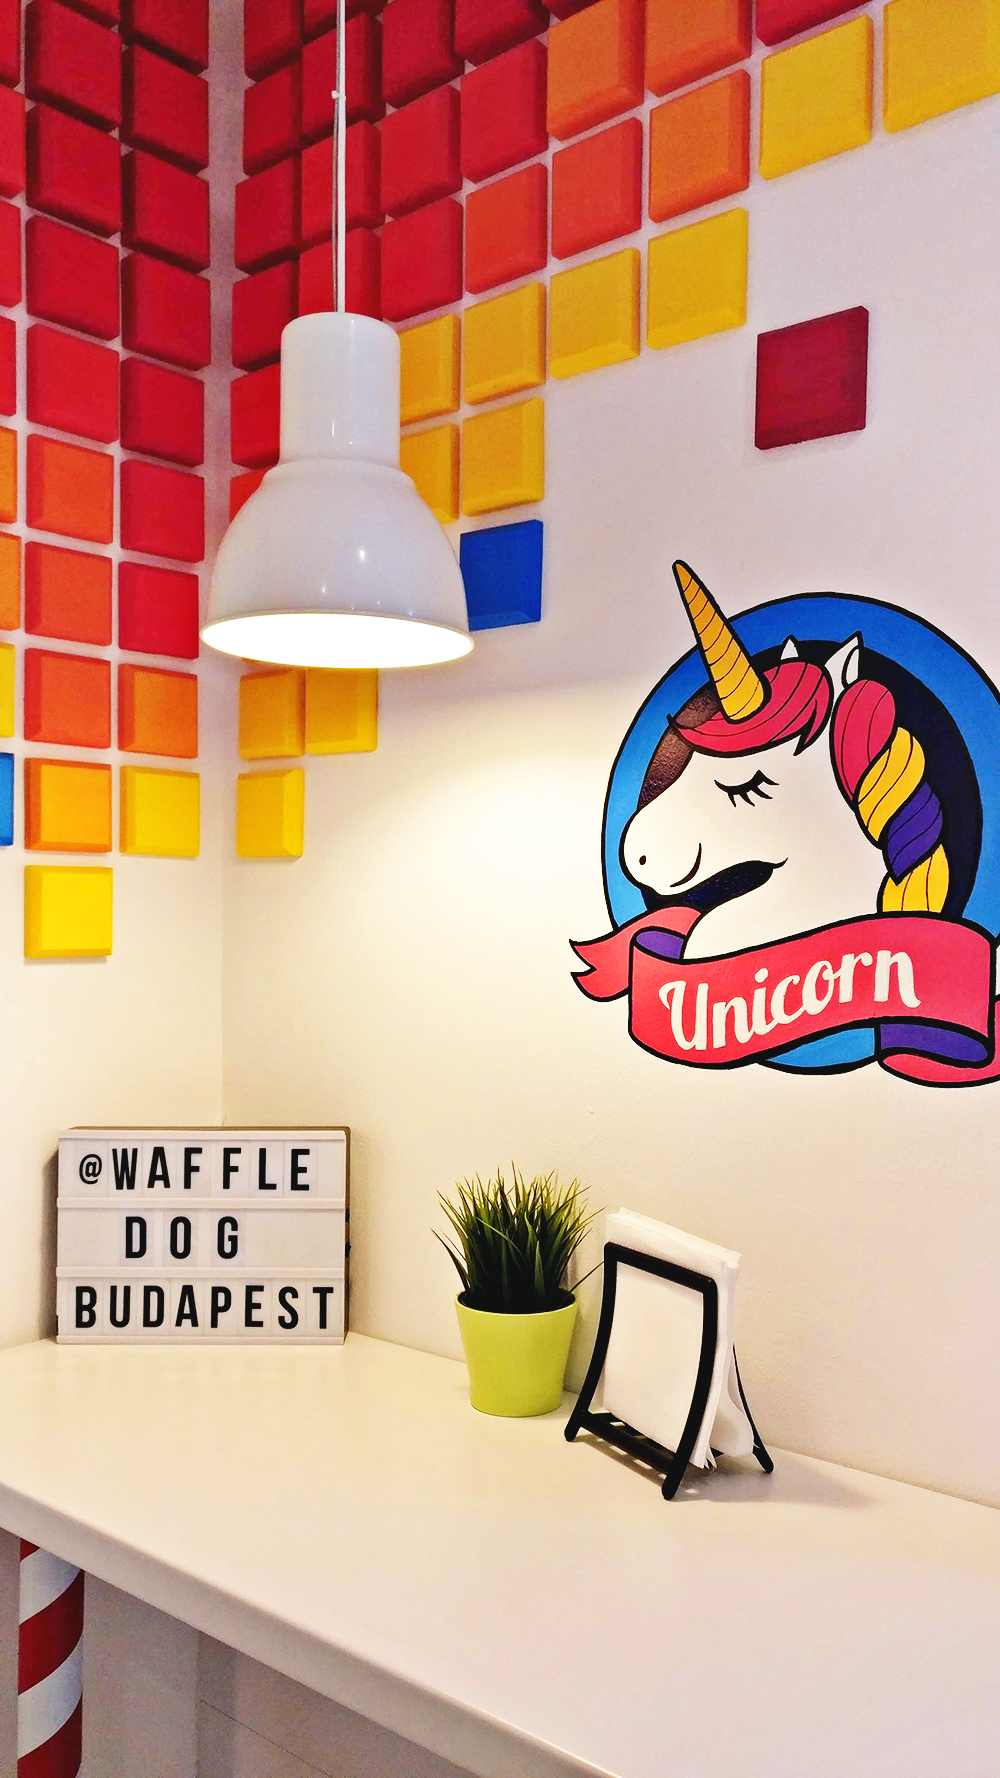 Unicorn decoration in Waffle dog - Unicorn and rainbow food guide to Budapest, Hungary | Aliz's Wonderland #unicorn #unicornfood #budapest #rainbowfood #budapestfood